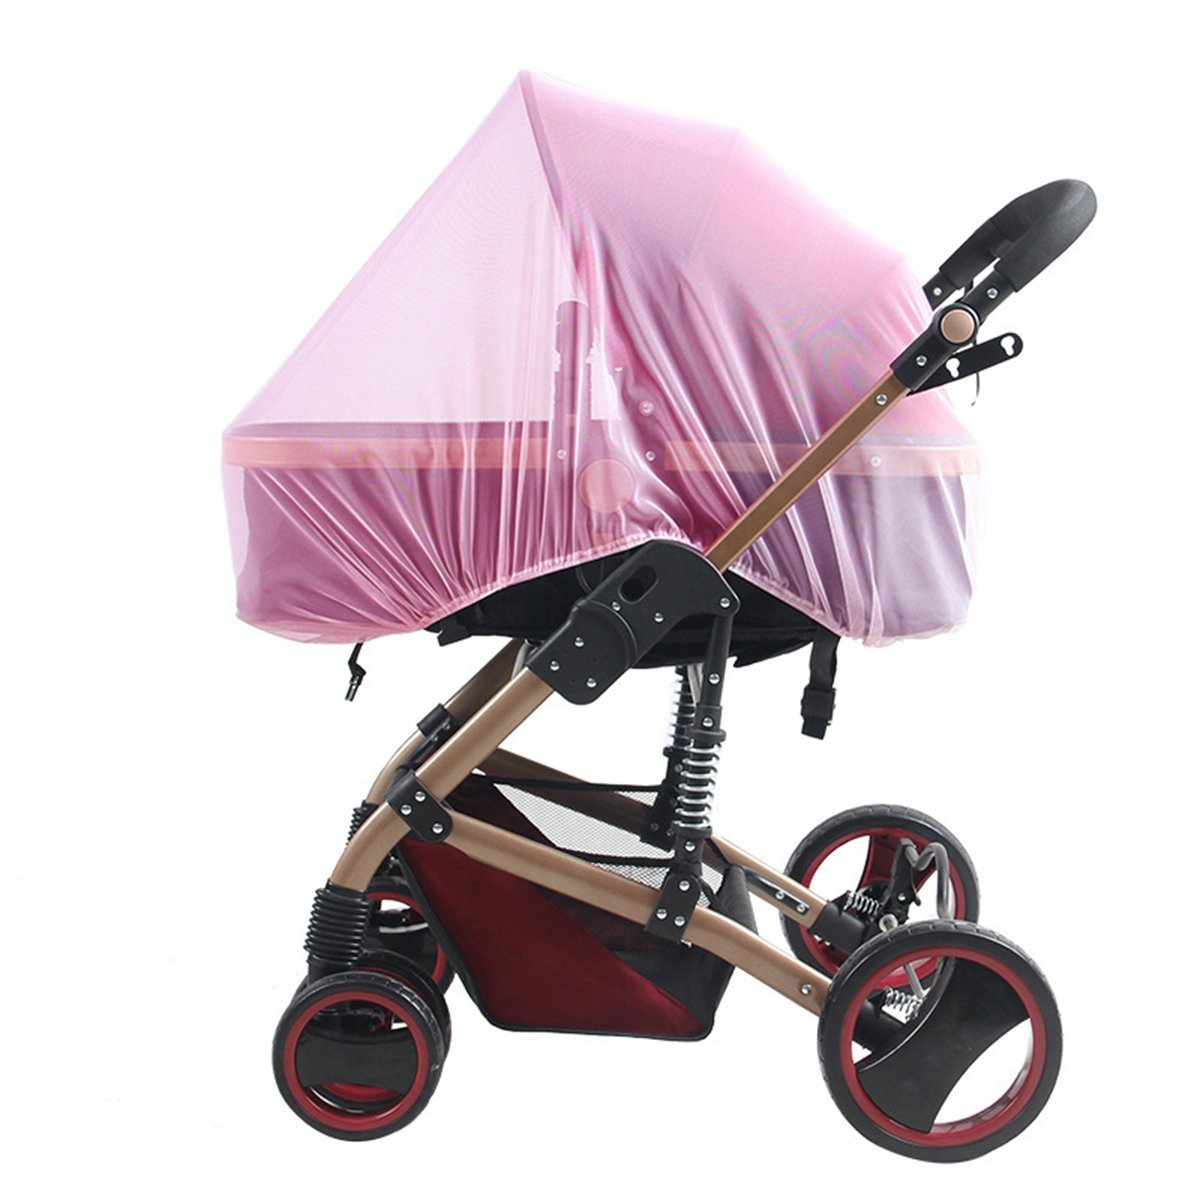 TININNA Universal Insect Net Mosquito Net for Pushchairs and Strollers Full Cover for Baby Car Seat Coffee